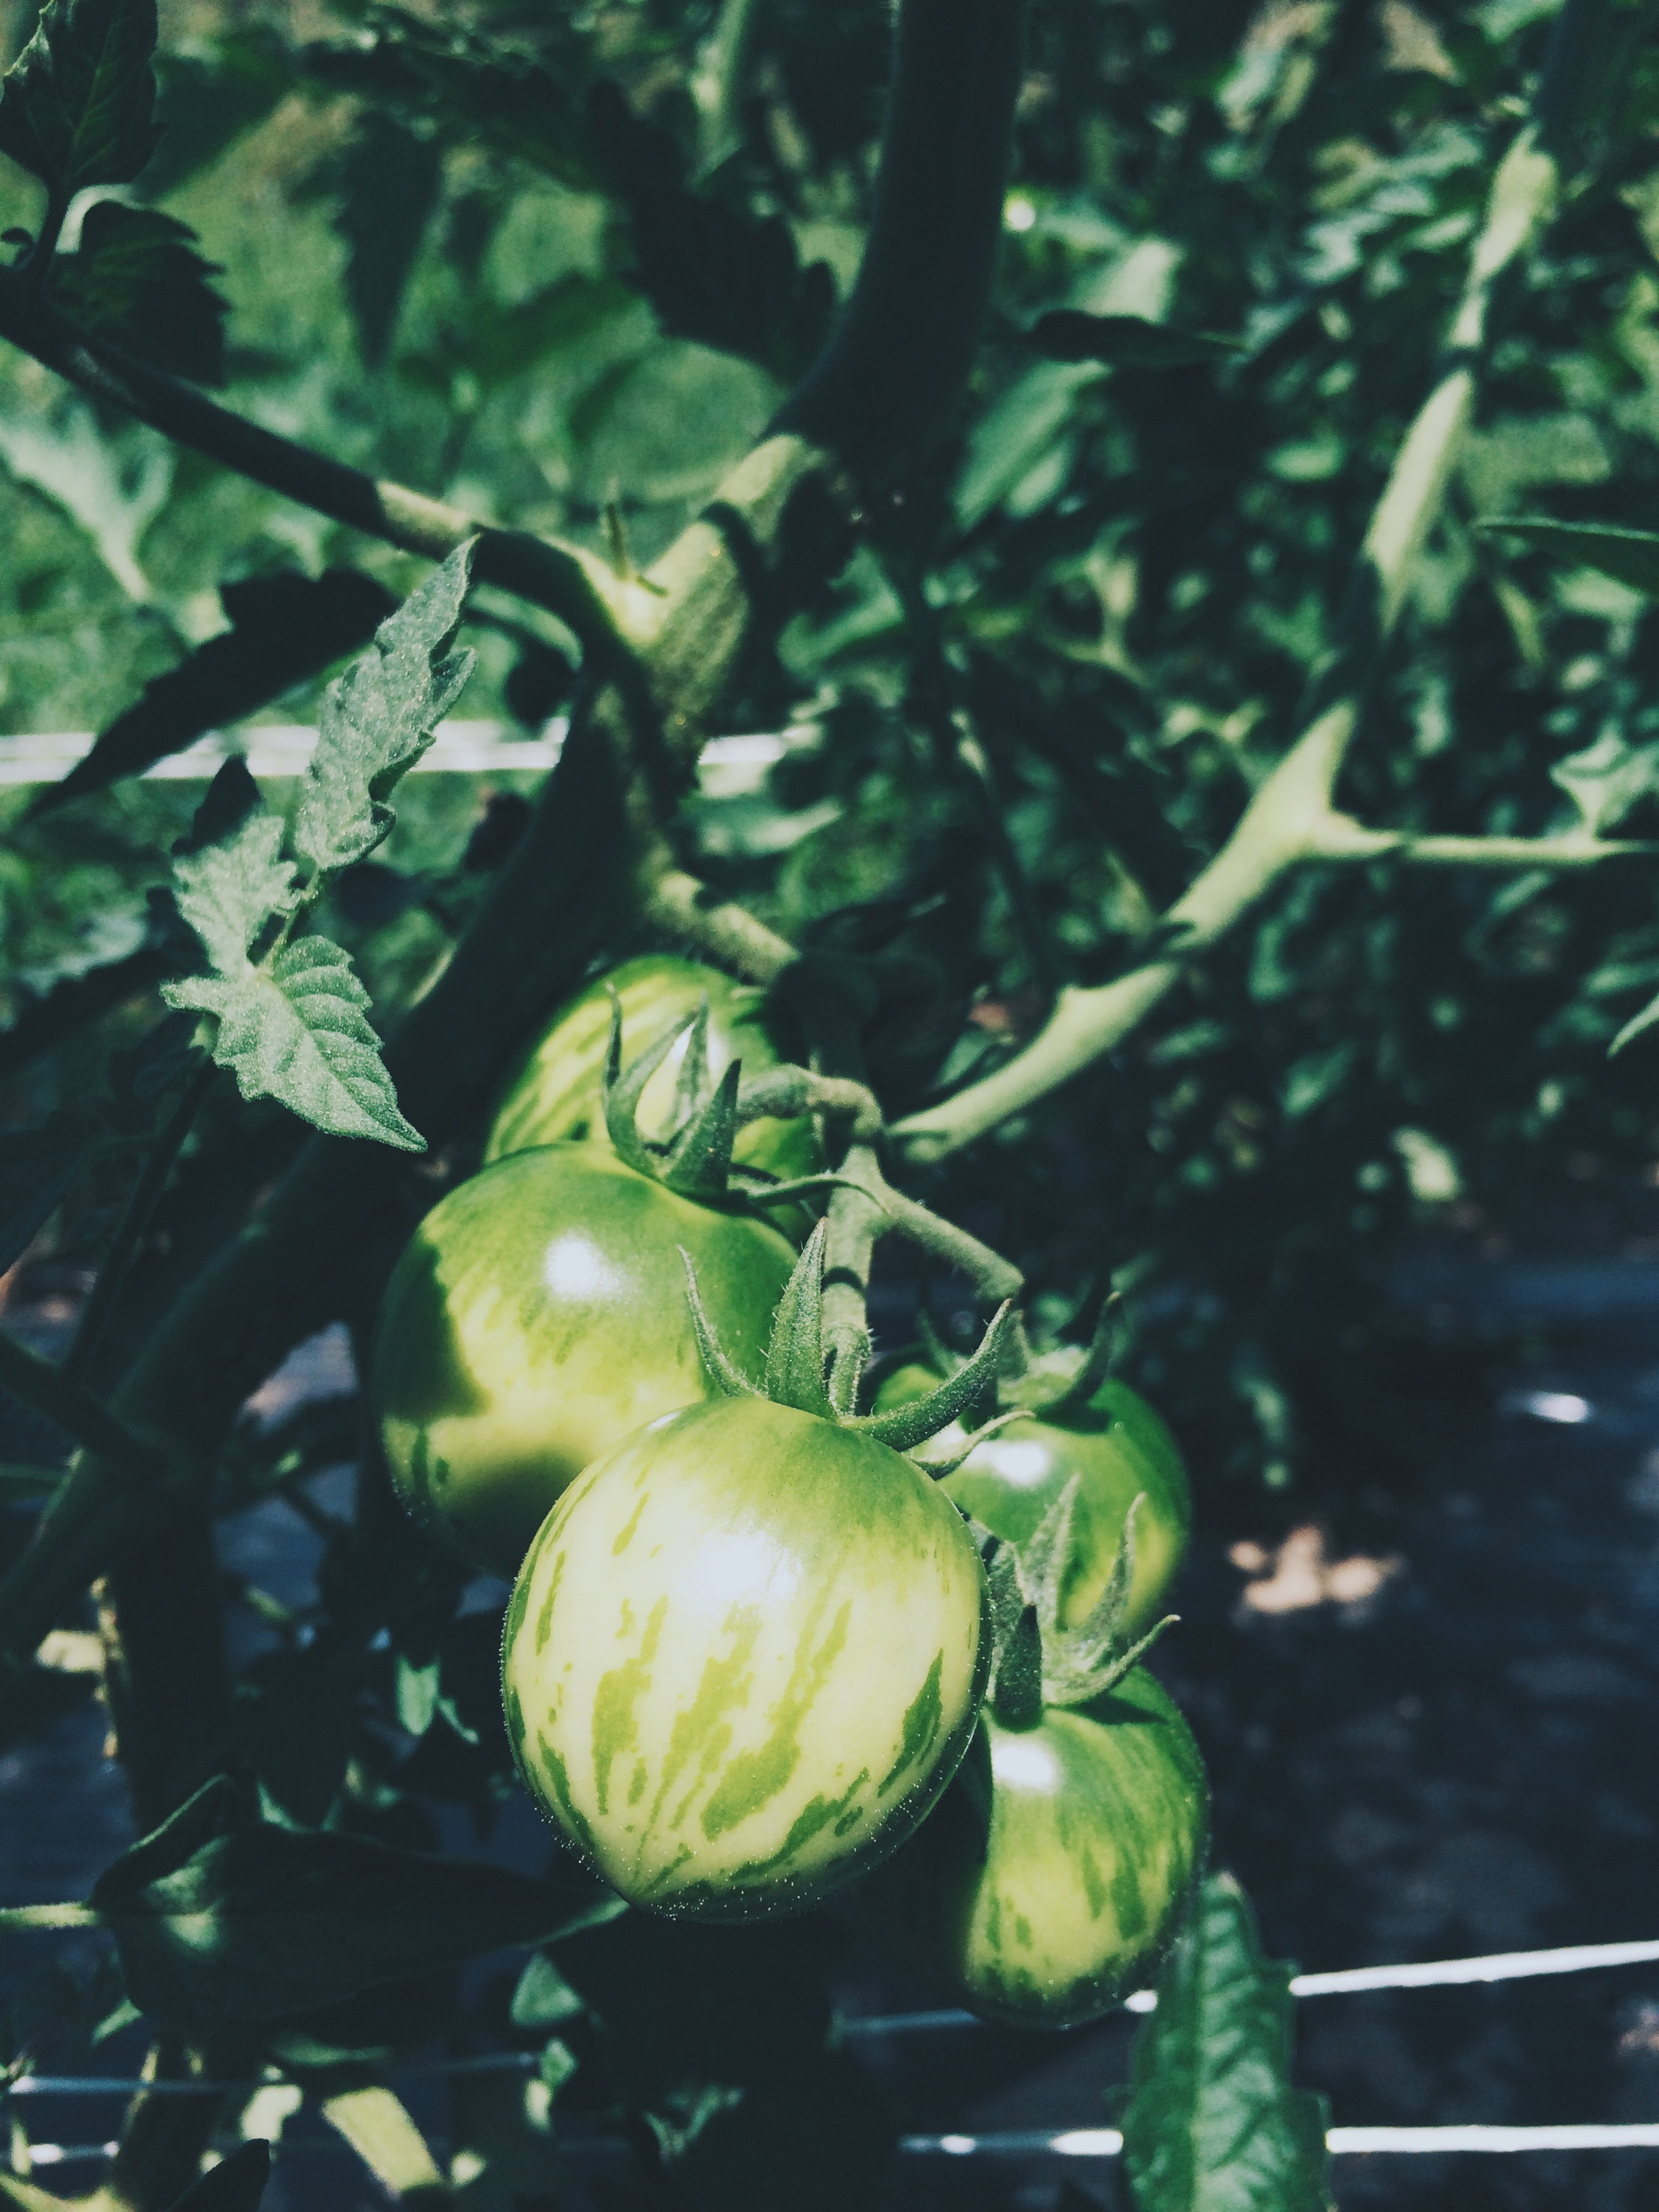 While we toil away on all sorts of chaotic July tasks, the tomatoes grow quietly and steadily, laying in wait, getting ready to ripen. We're SO ready.